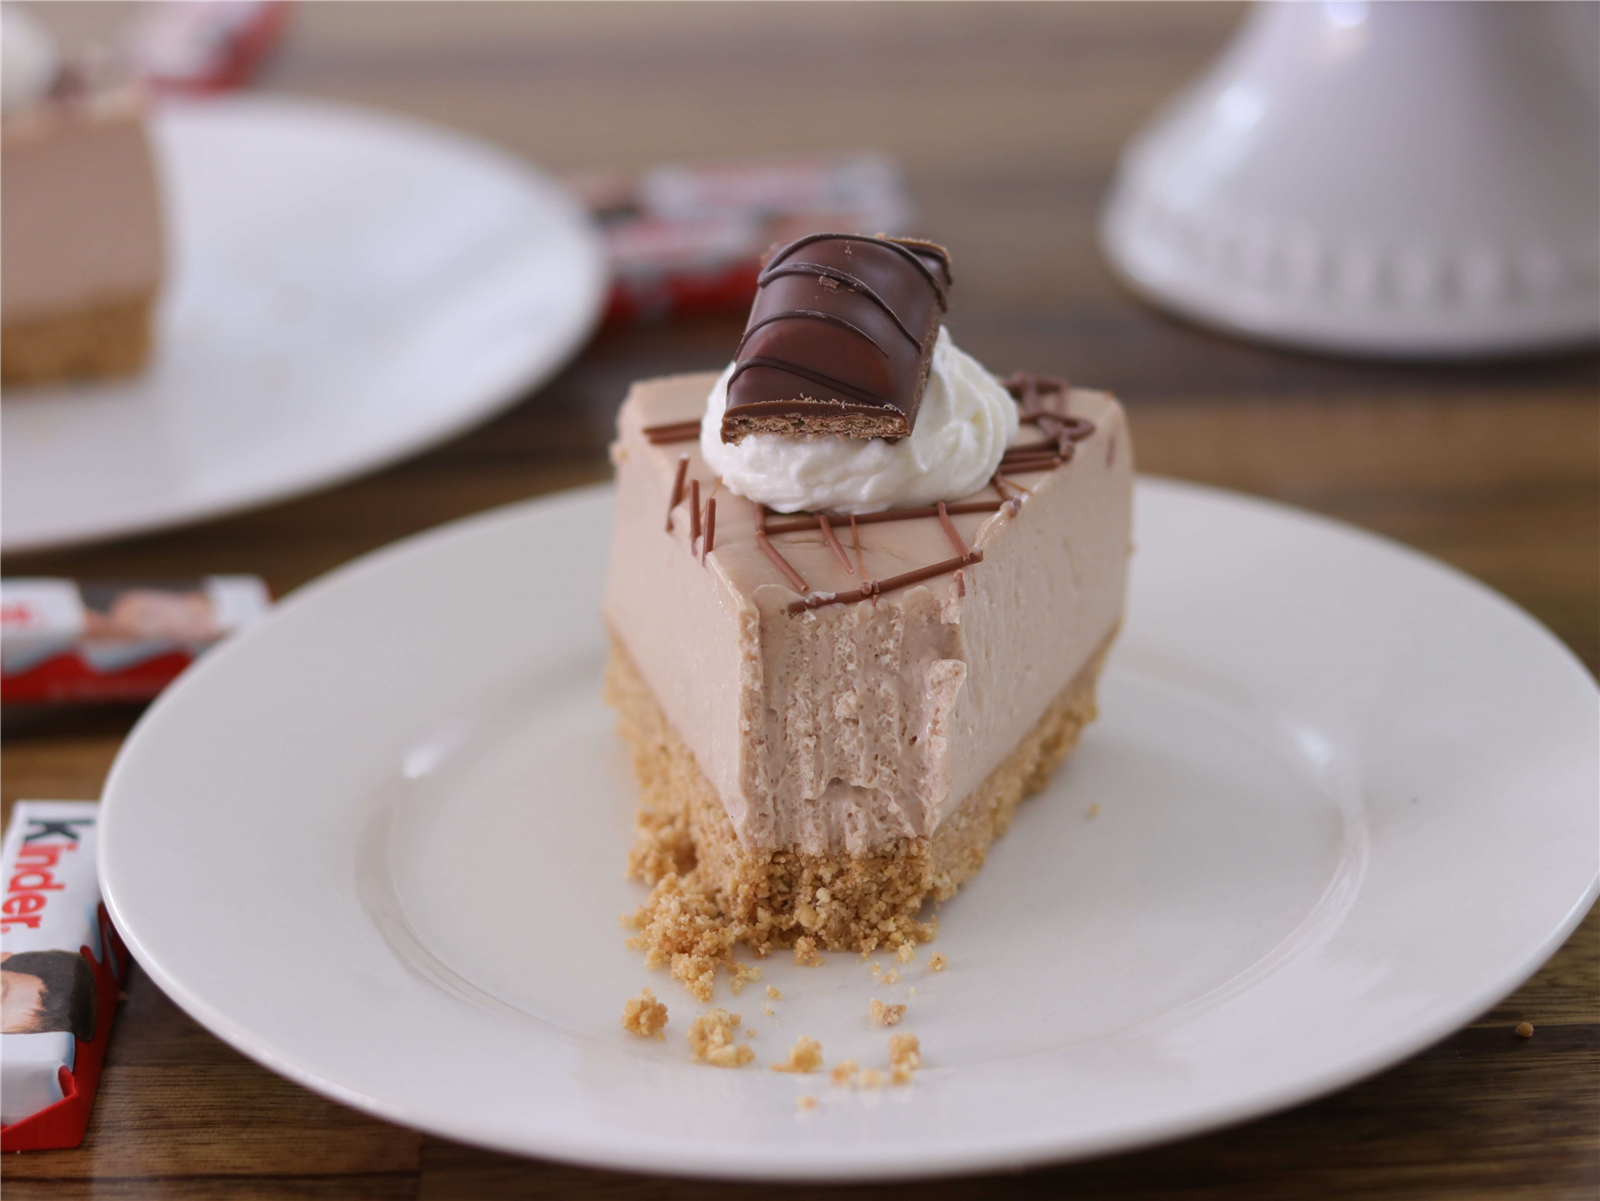 No Bake Kinder Bueno Cheesecake Recipe The Cooking Foodie